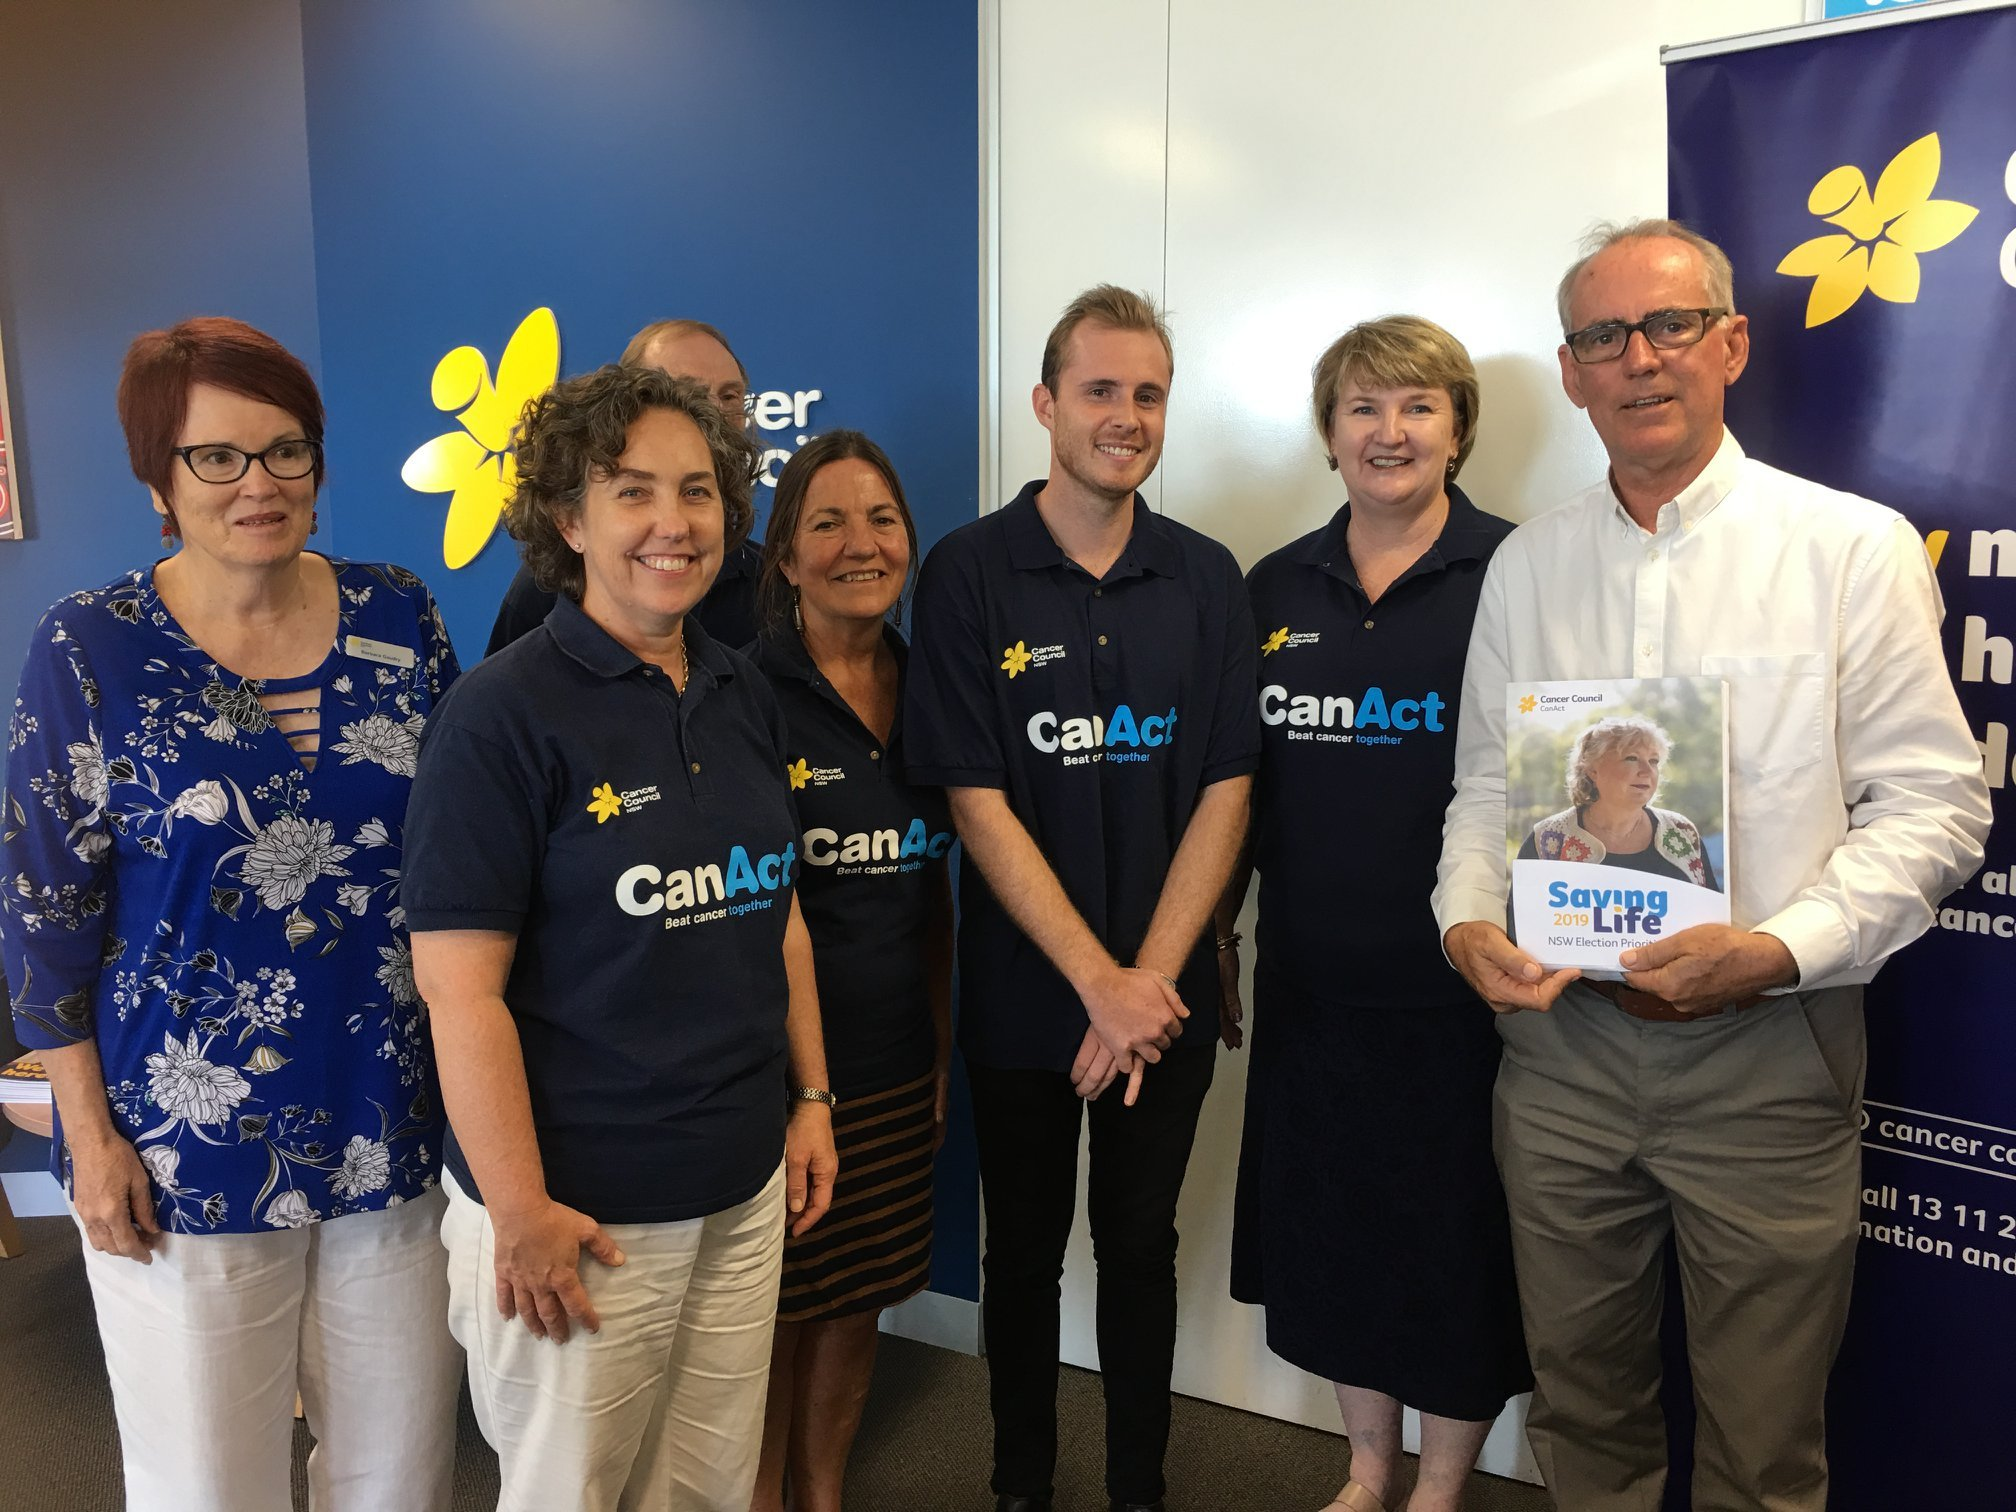 The Cancer Council's Hunter branch is a wonderful organisation which I have worked closely with over many years. They do some tremendous work and have created informed policy which supports the local community and addresses major health issues.